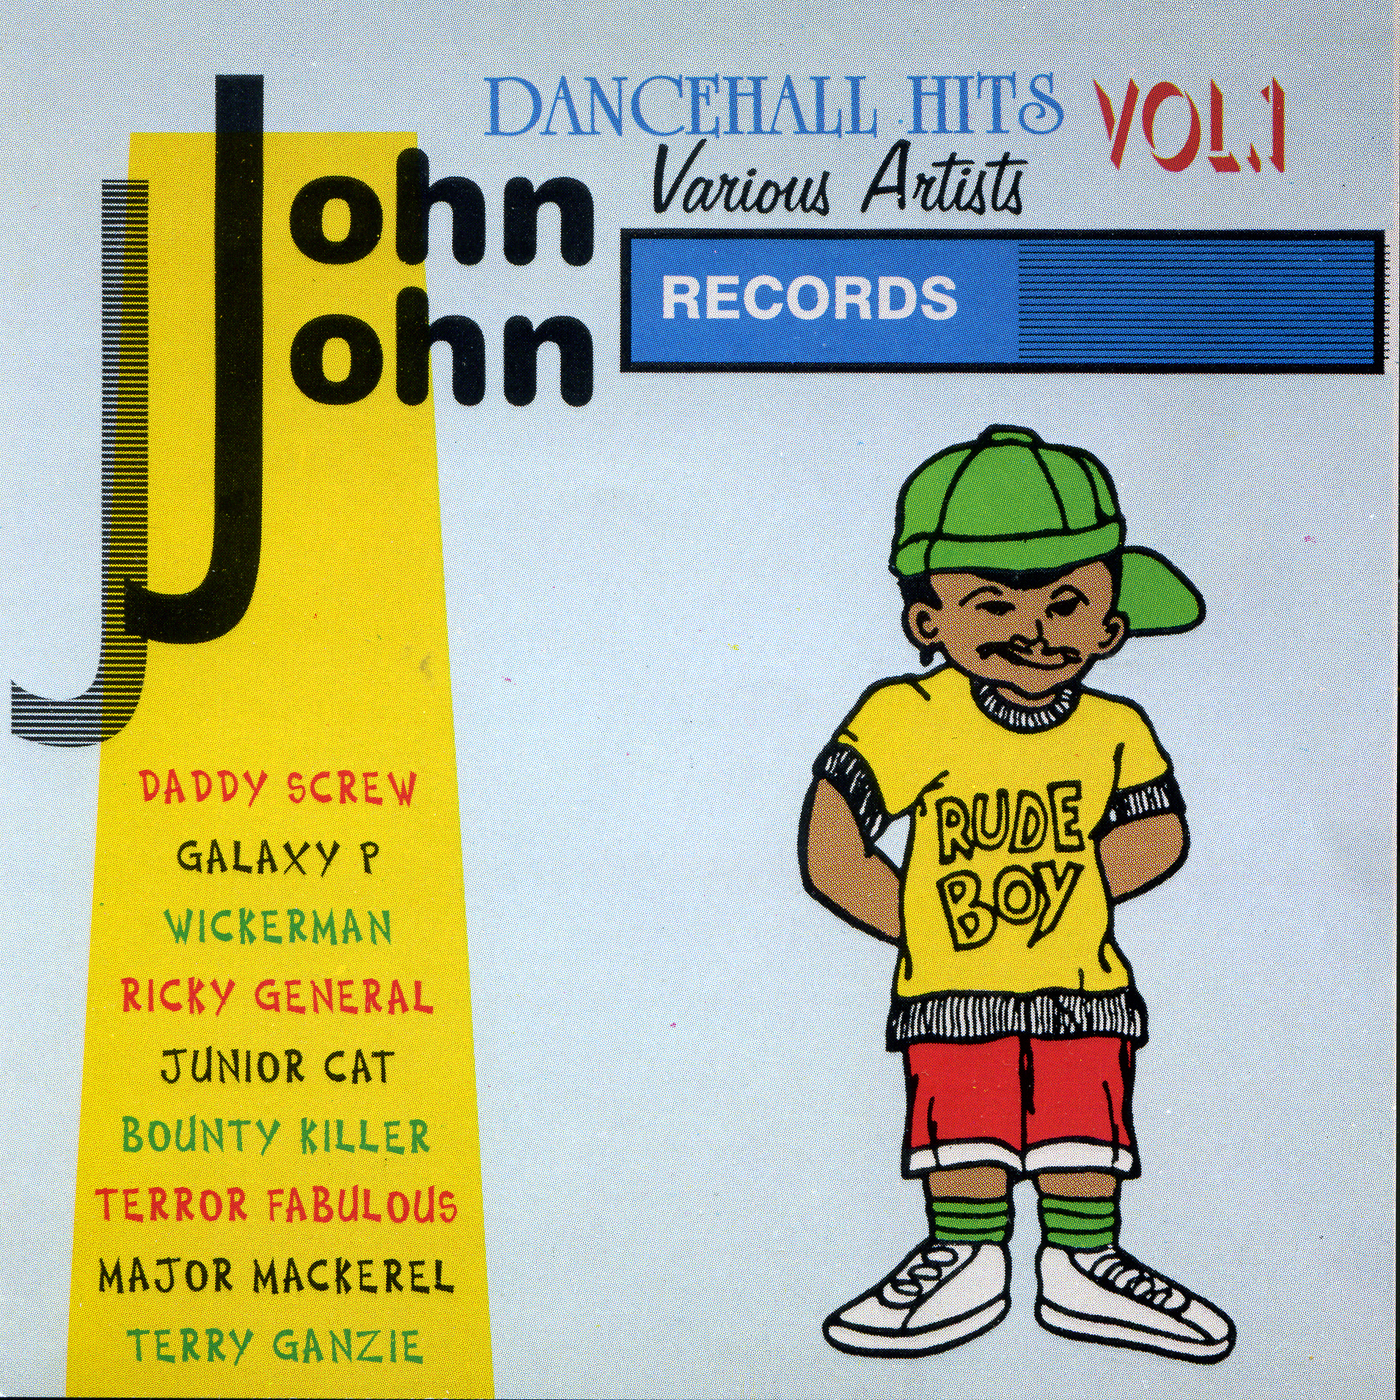 John John Dancehall Hits Vol. 1